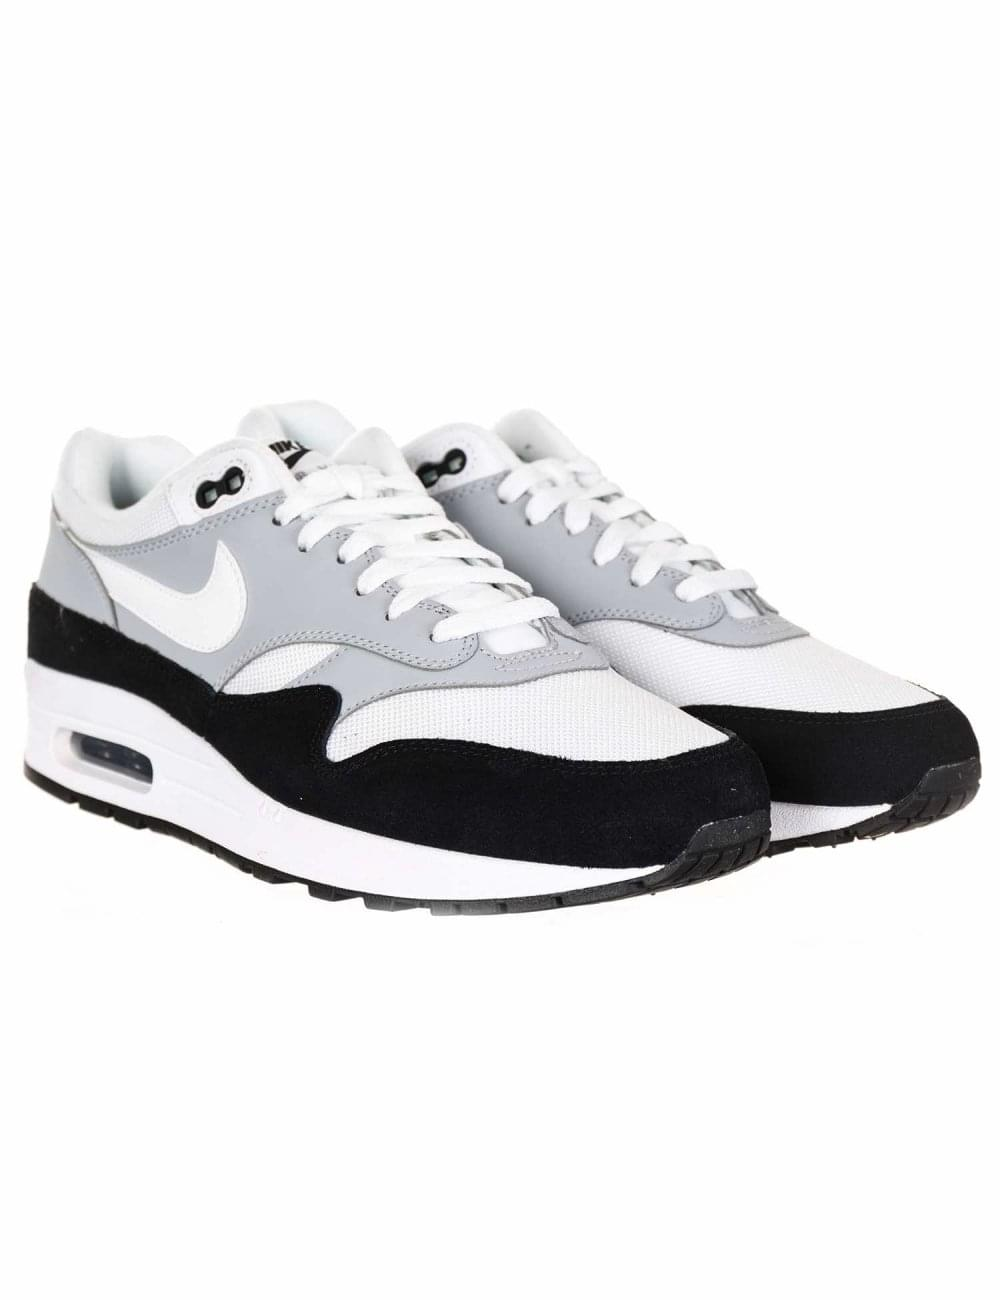 finest selection 615f5 a63ab Air Max 1 Trainers - Wolf Grey Black